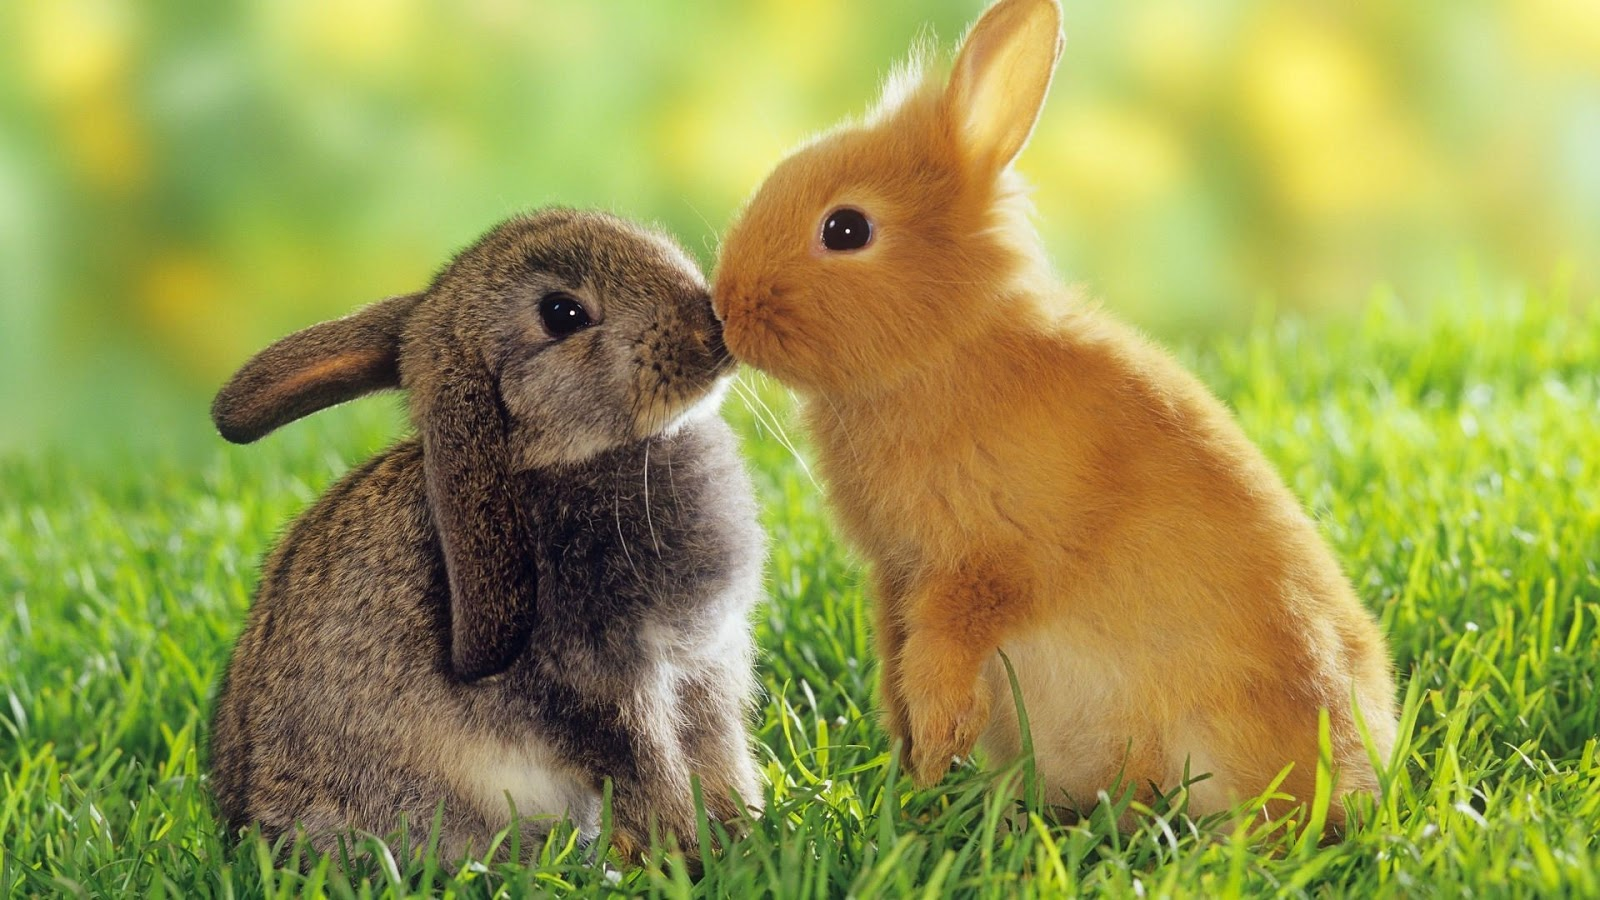 All Wallpapers: Animals Love HD New Wallpapers 2013